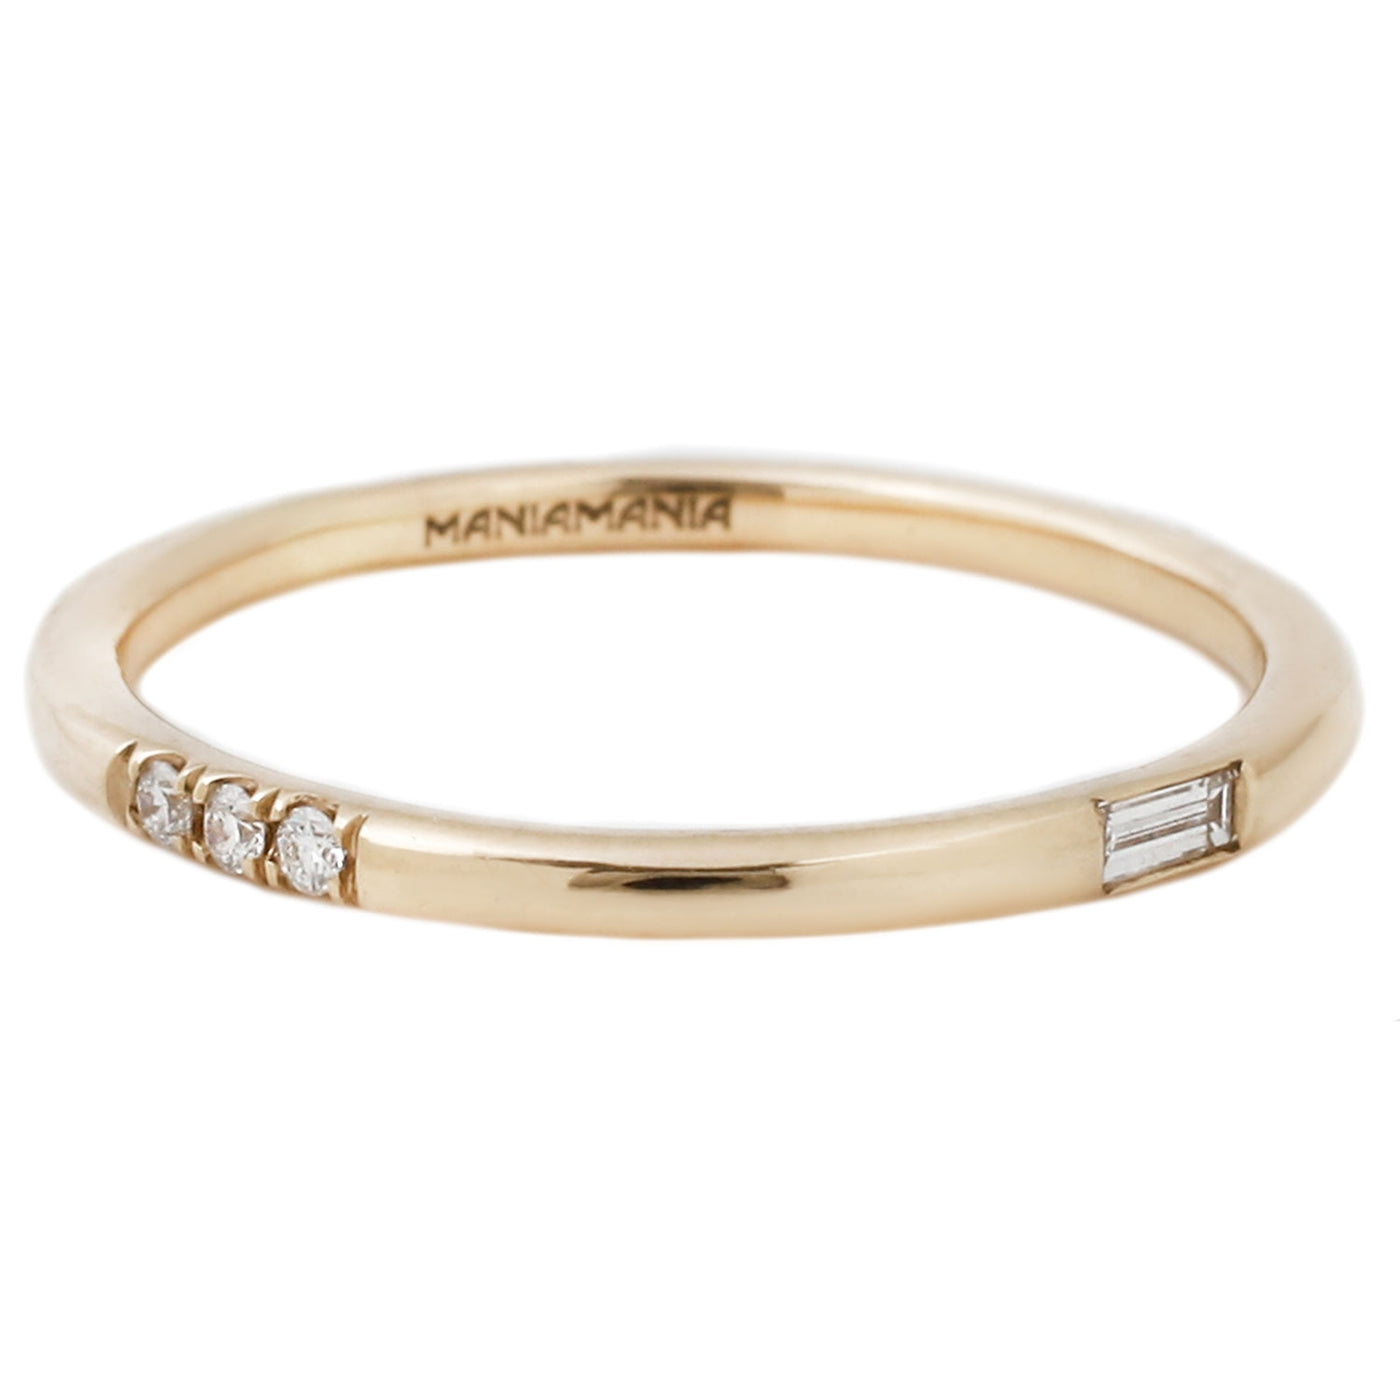 ManiaMania Immersion Band in Yellow Gold With White Diamonds